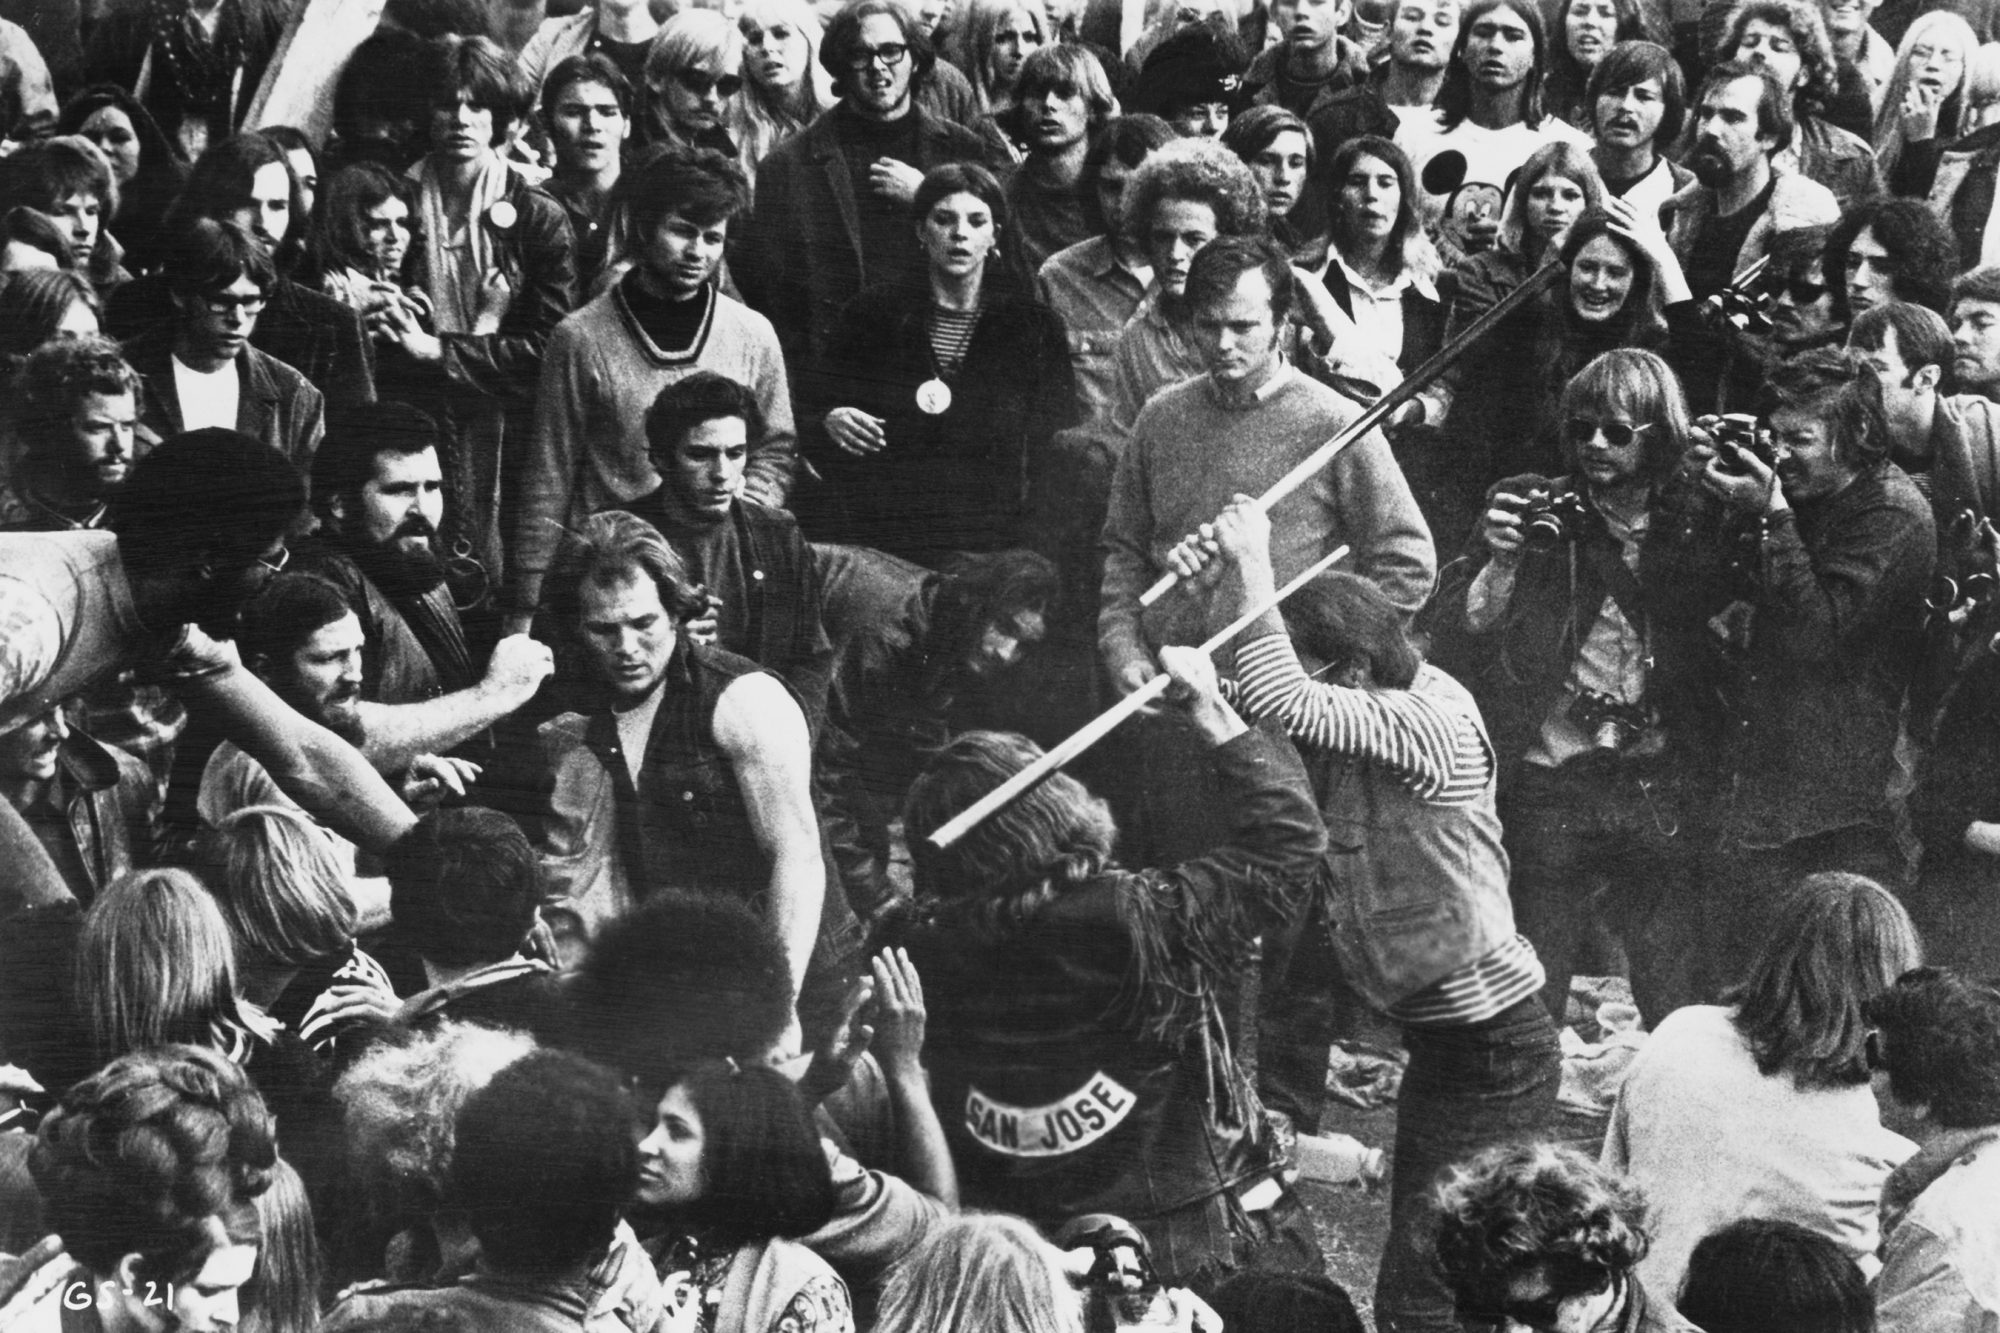 Trouble At Altamont